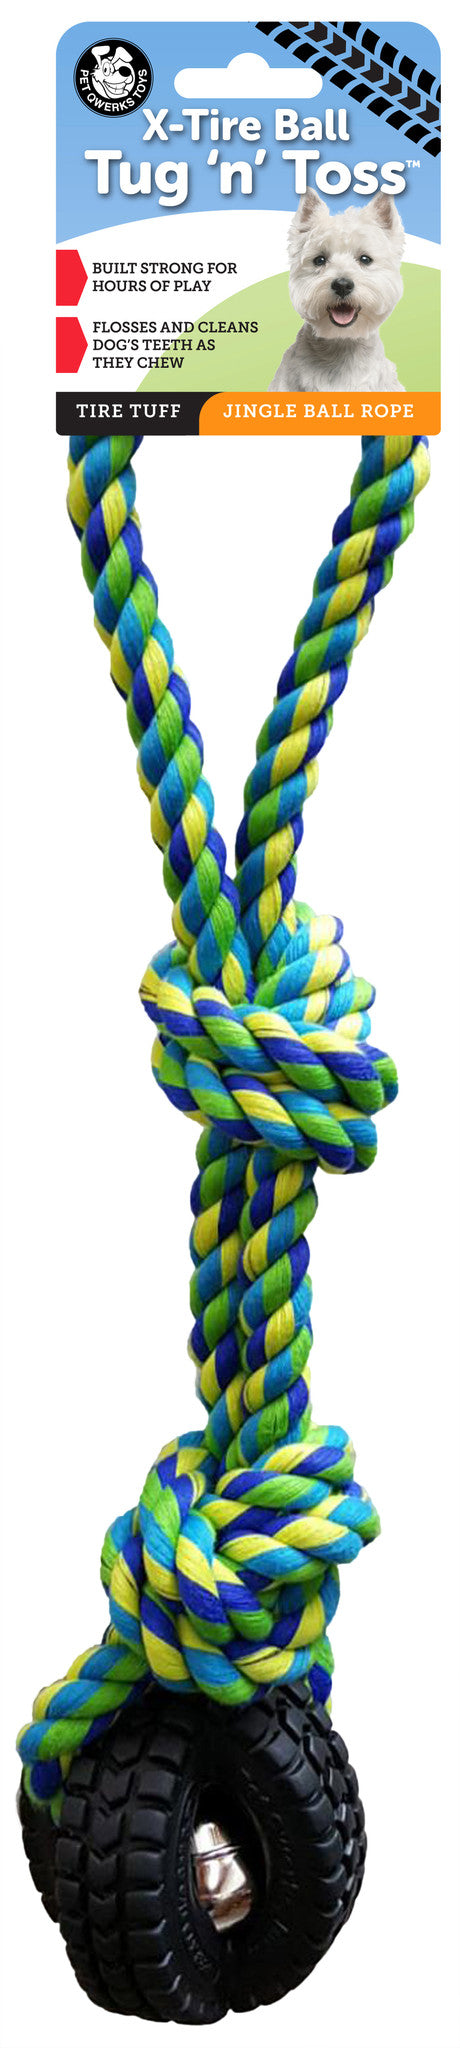 Jingle X-Tire Ball with Knotted Rope, Tug 'n Toss Dog Toy - Pet Qwerks | Interactive Pet Toys